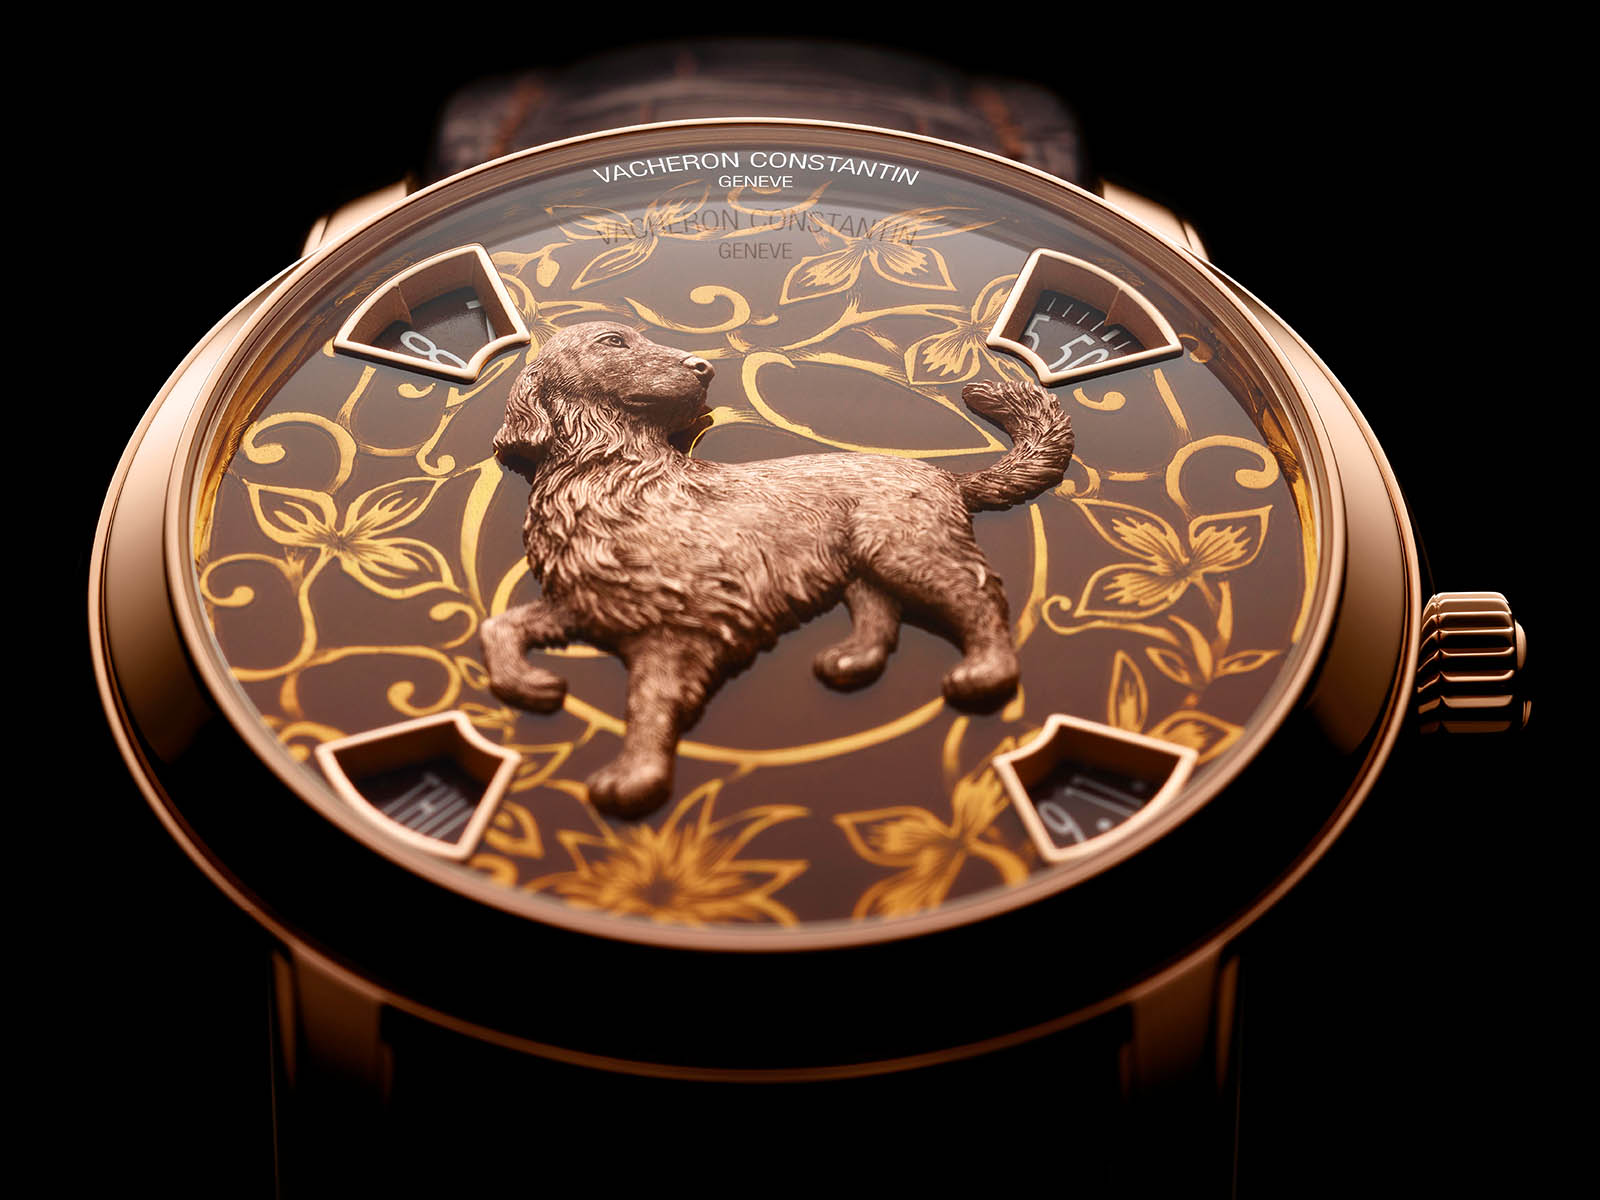 Vacheron-Constantin-The-Legend-of-the-Chinese-Zodiac-Year-of-the-Dog-4.jpg